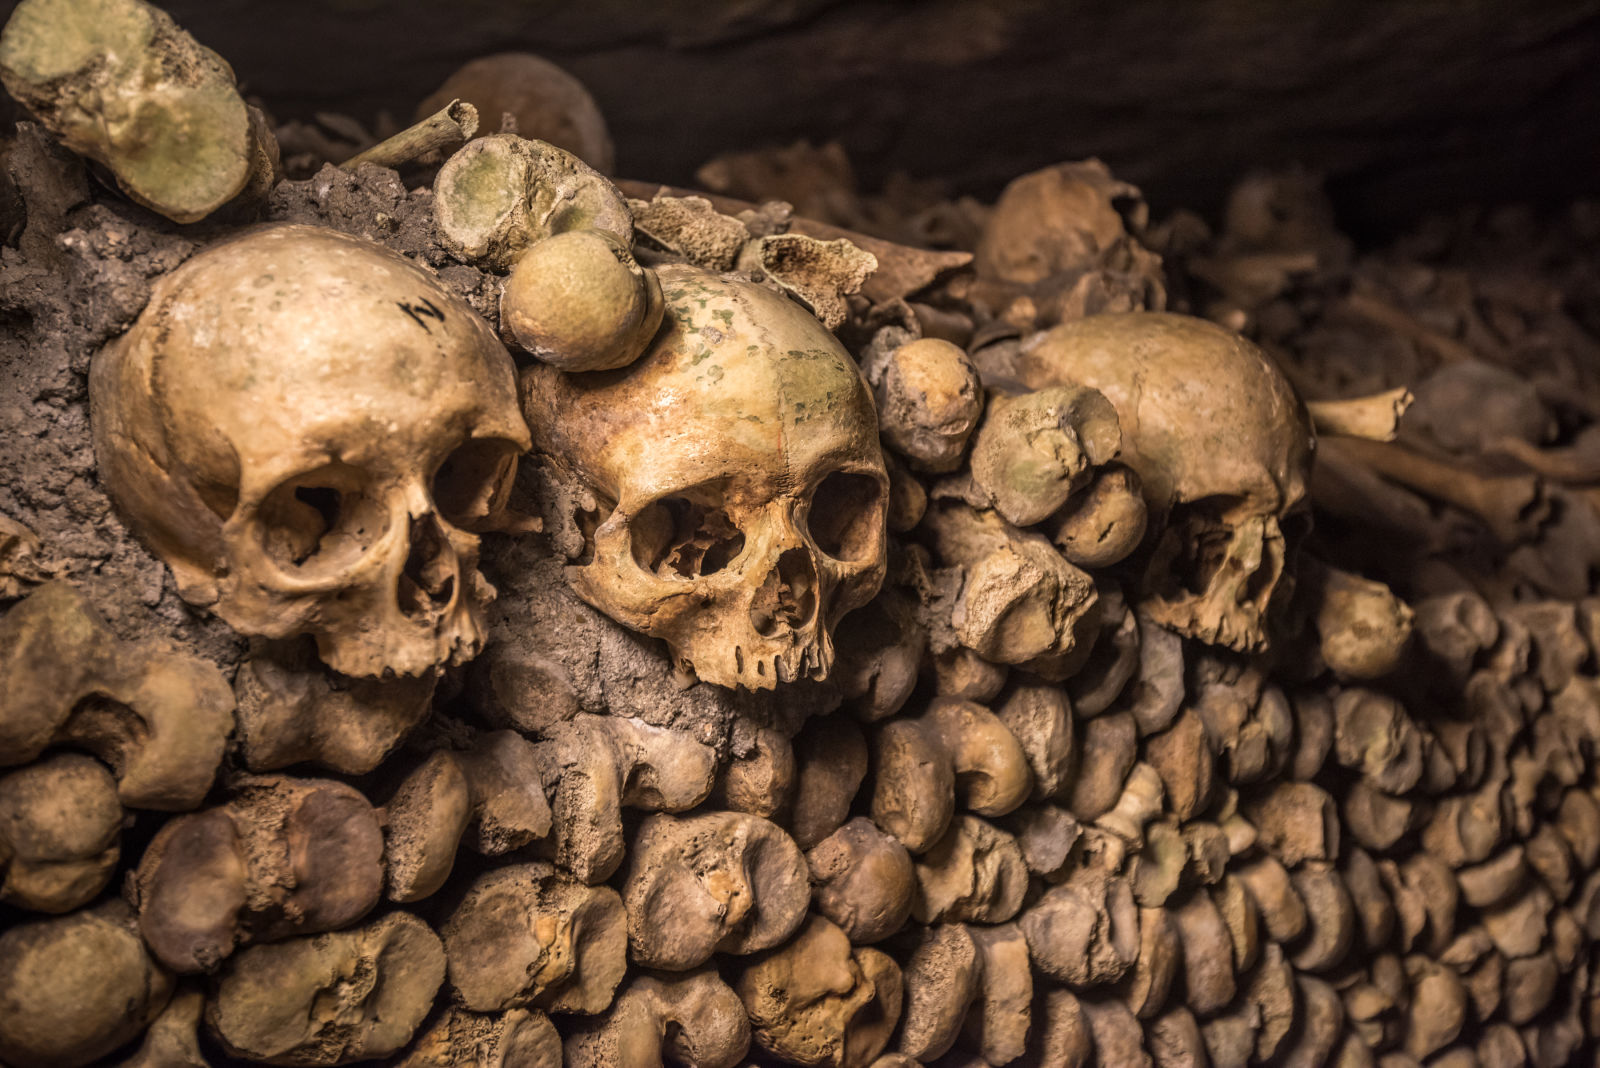 Catacombs of Paris, Europe, France